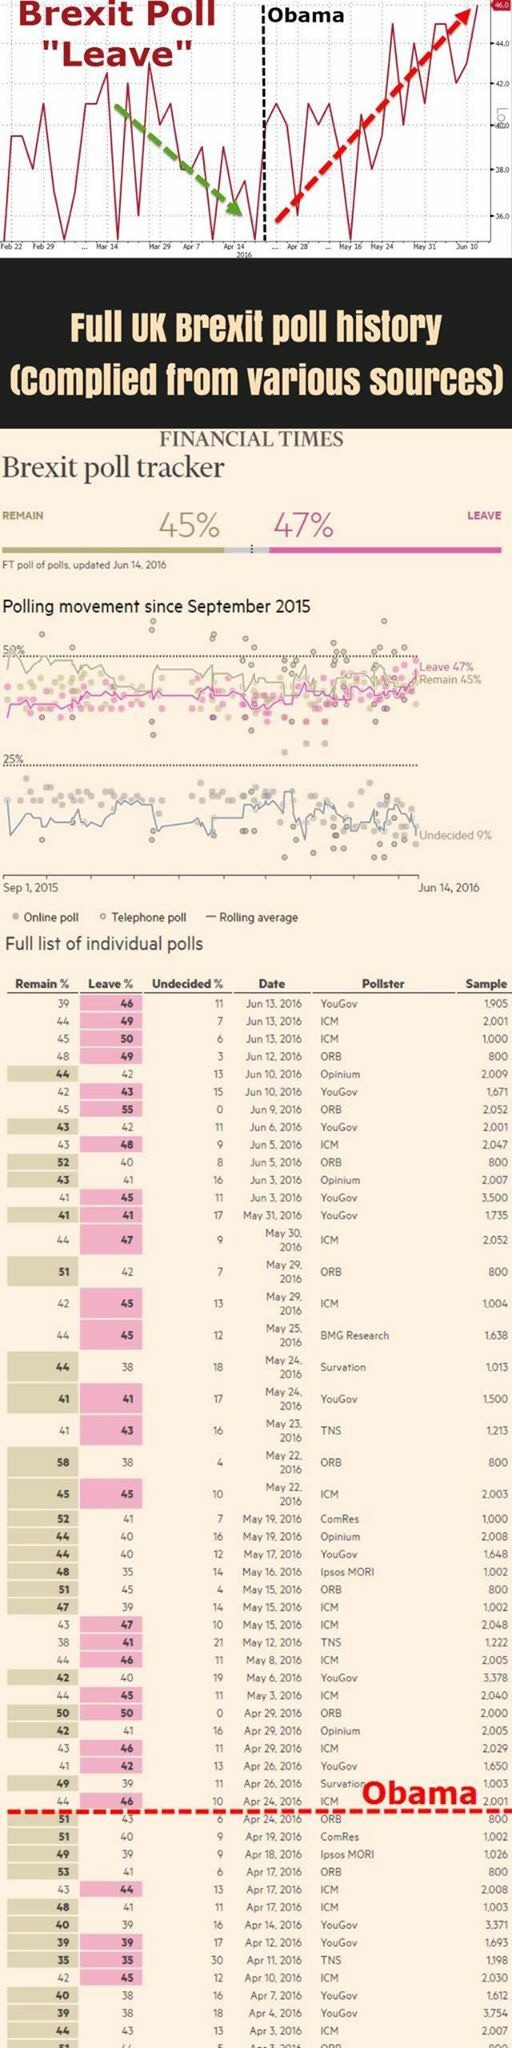 """We've compiled pretty much the most comprehensive illustration on the UK Brexit opinion polls across the English country. There are many pollsters involved in garnering viewpoints on Brexit so it bears prudence to view data widely.    One thing is for sure across all data sources — Brexit is gaining ground and is taking a clear lead ver the once predominant ""stay"" camp.    Another thing is apparently clear — Since Obama's visit to the UK a few months back (the American President encouraged voters not to vote for Brexit), sentiment has shifted in favor for the ""leave"" camp. Was Obama the vixen? Well, the data doesn't lie.""    Business Of Finance on Facebook, 15 June 2016"